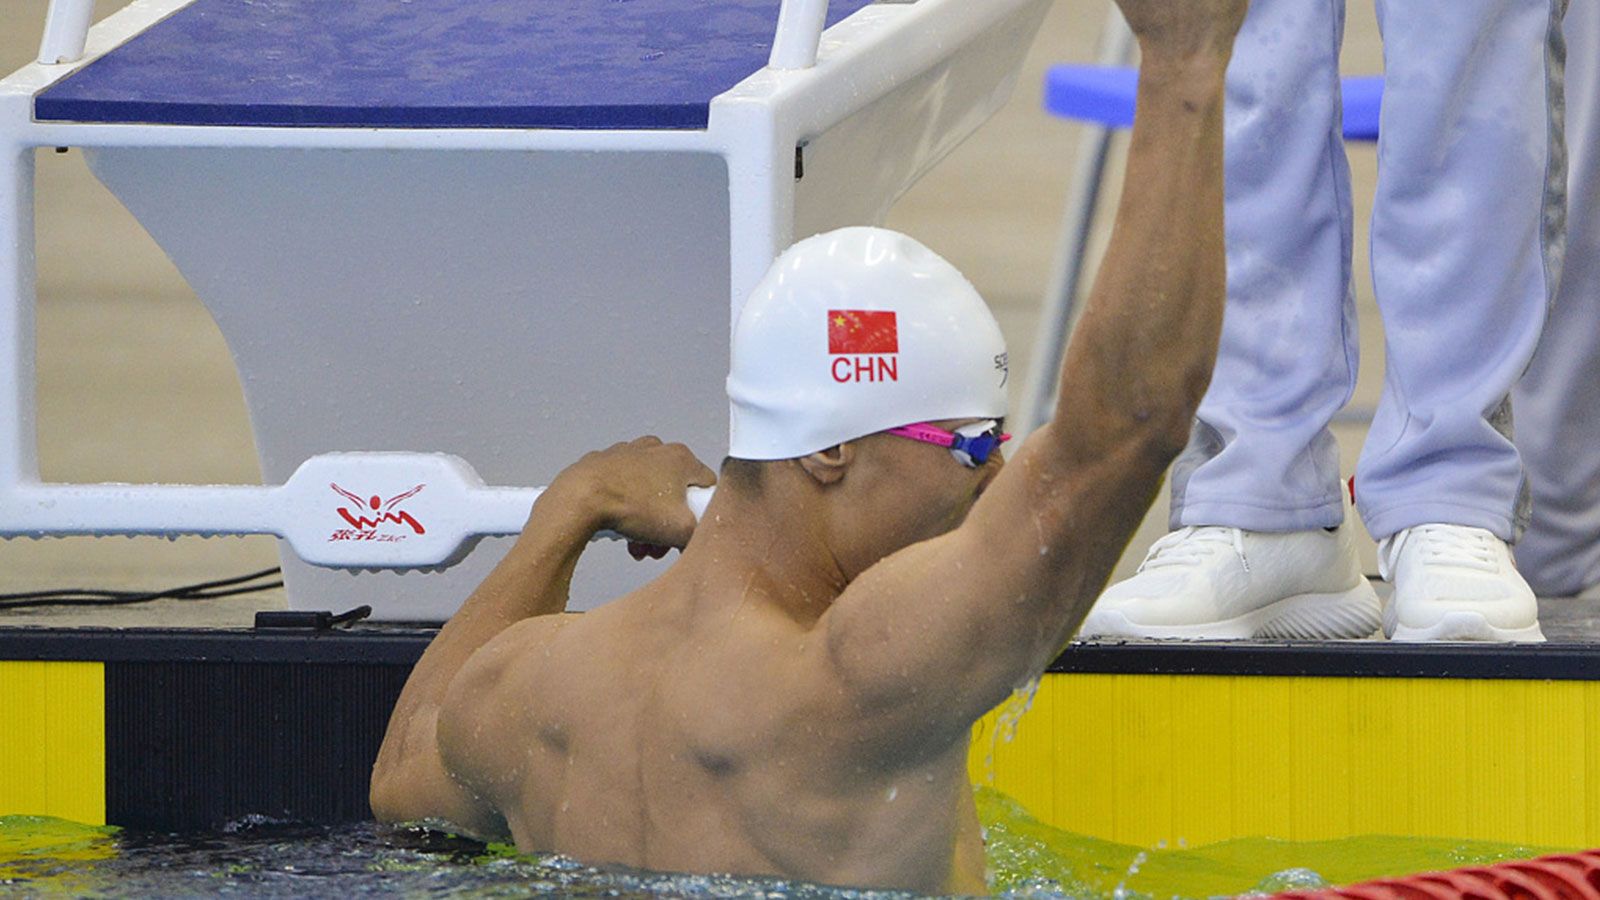 China adds 7 gold medals, sets 5 records in swimming at Military World Games